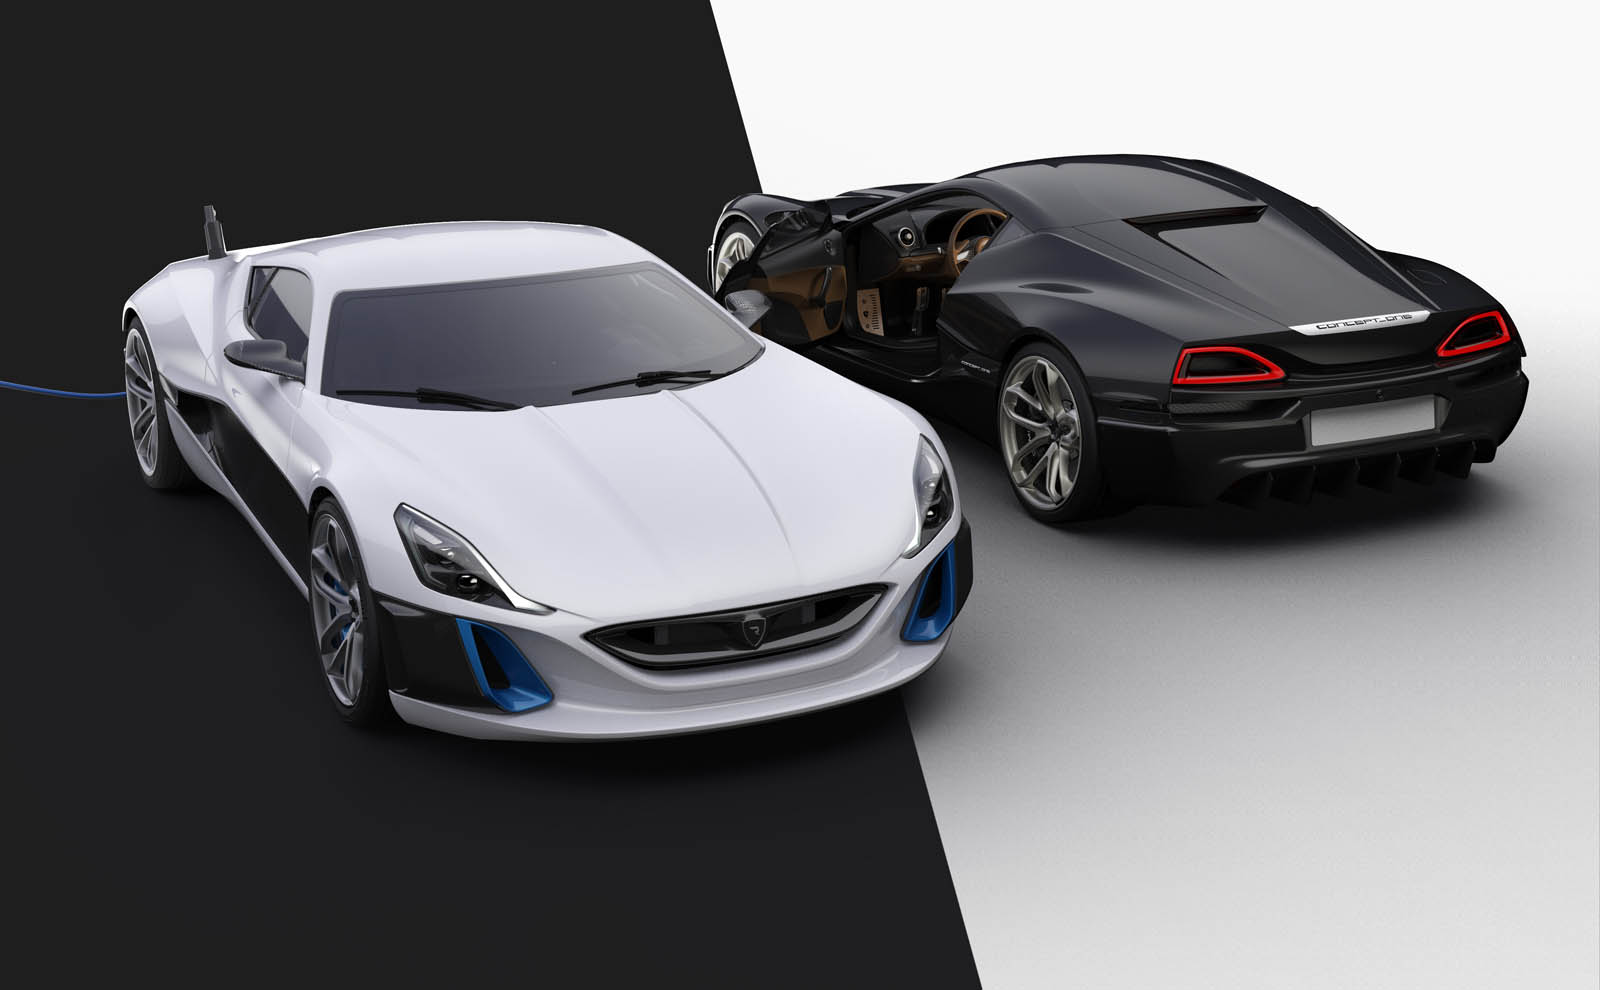 Rimac Upgrades Concept One Electric Supercar To Take On The World